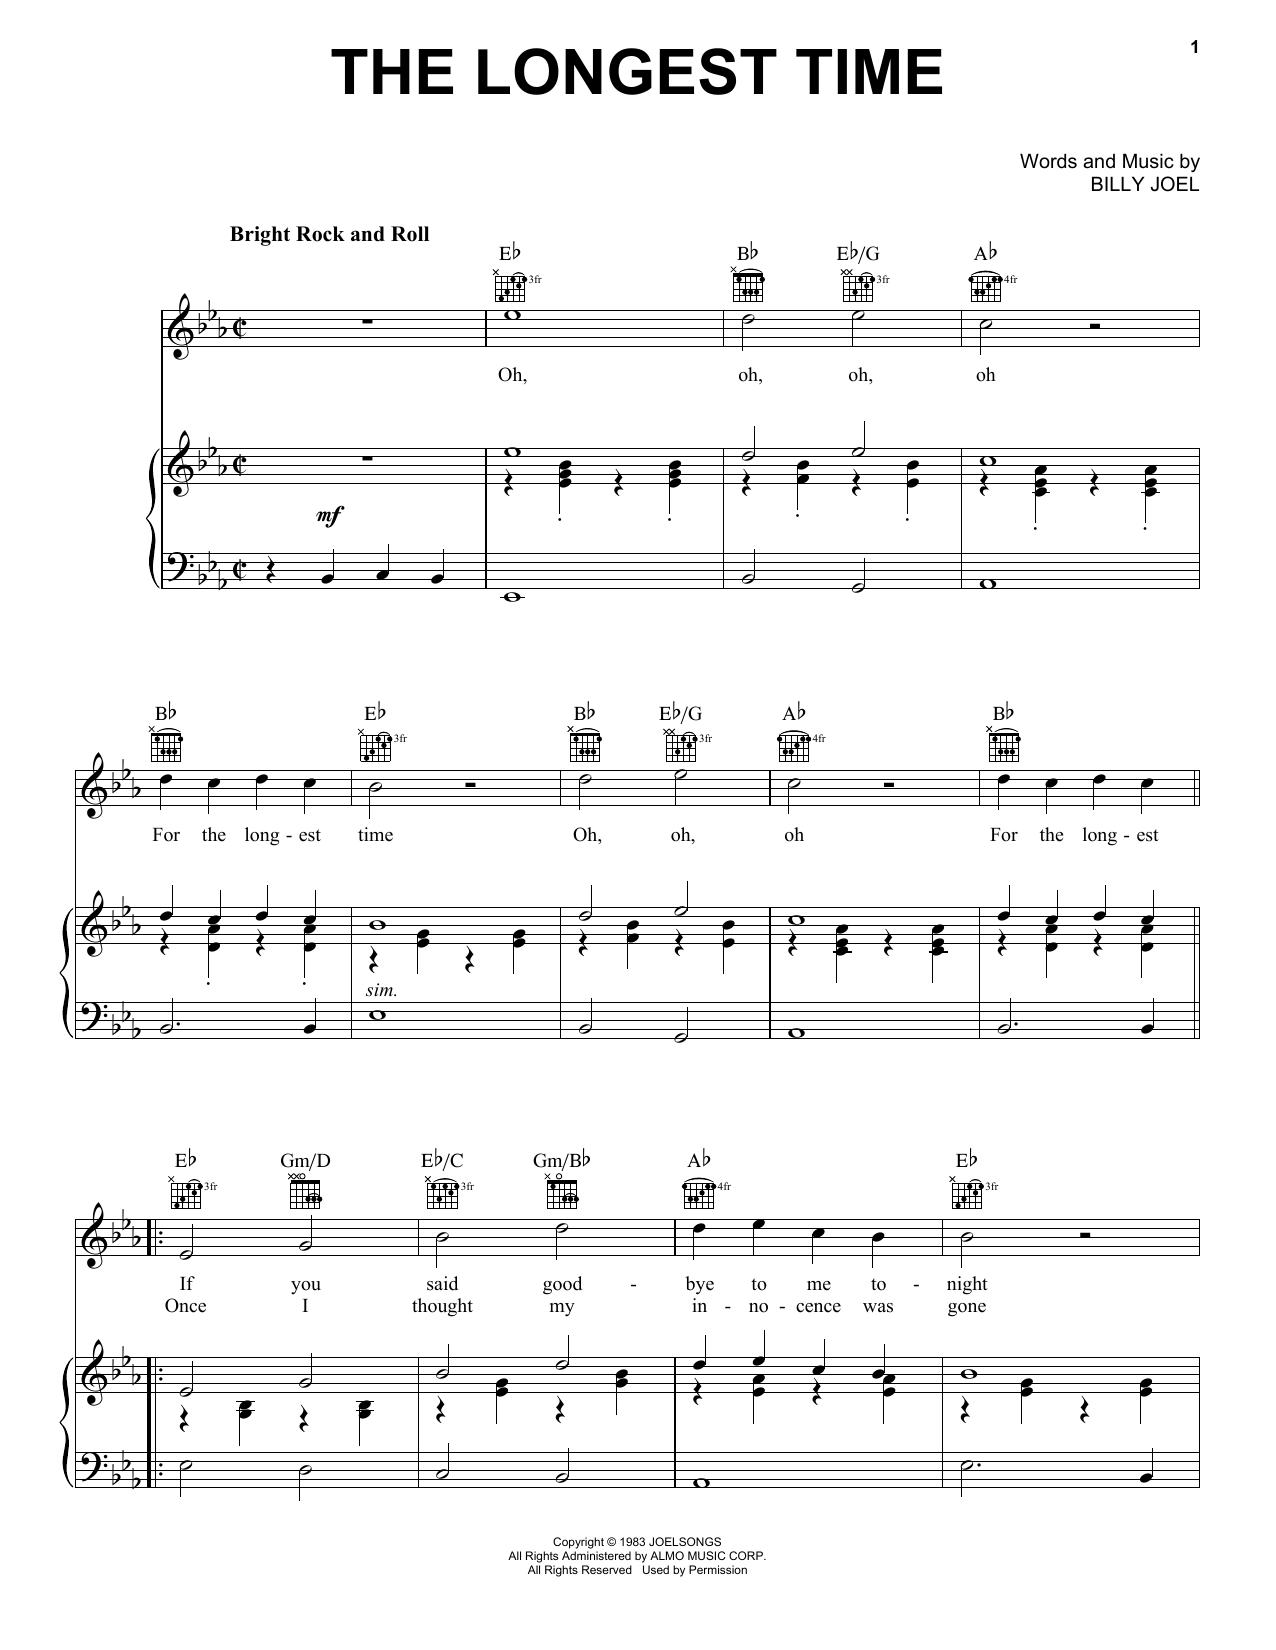 Billy Joel The Longest Time sheet music notes and chords